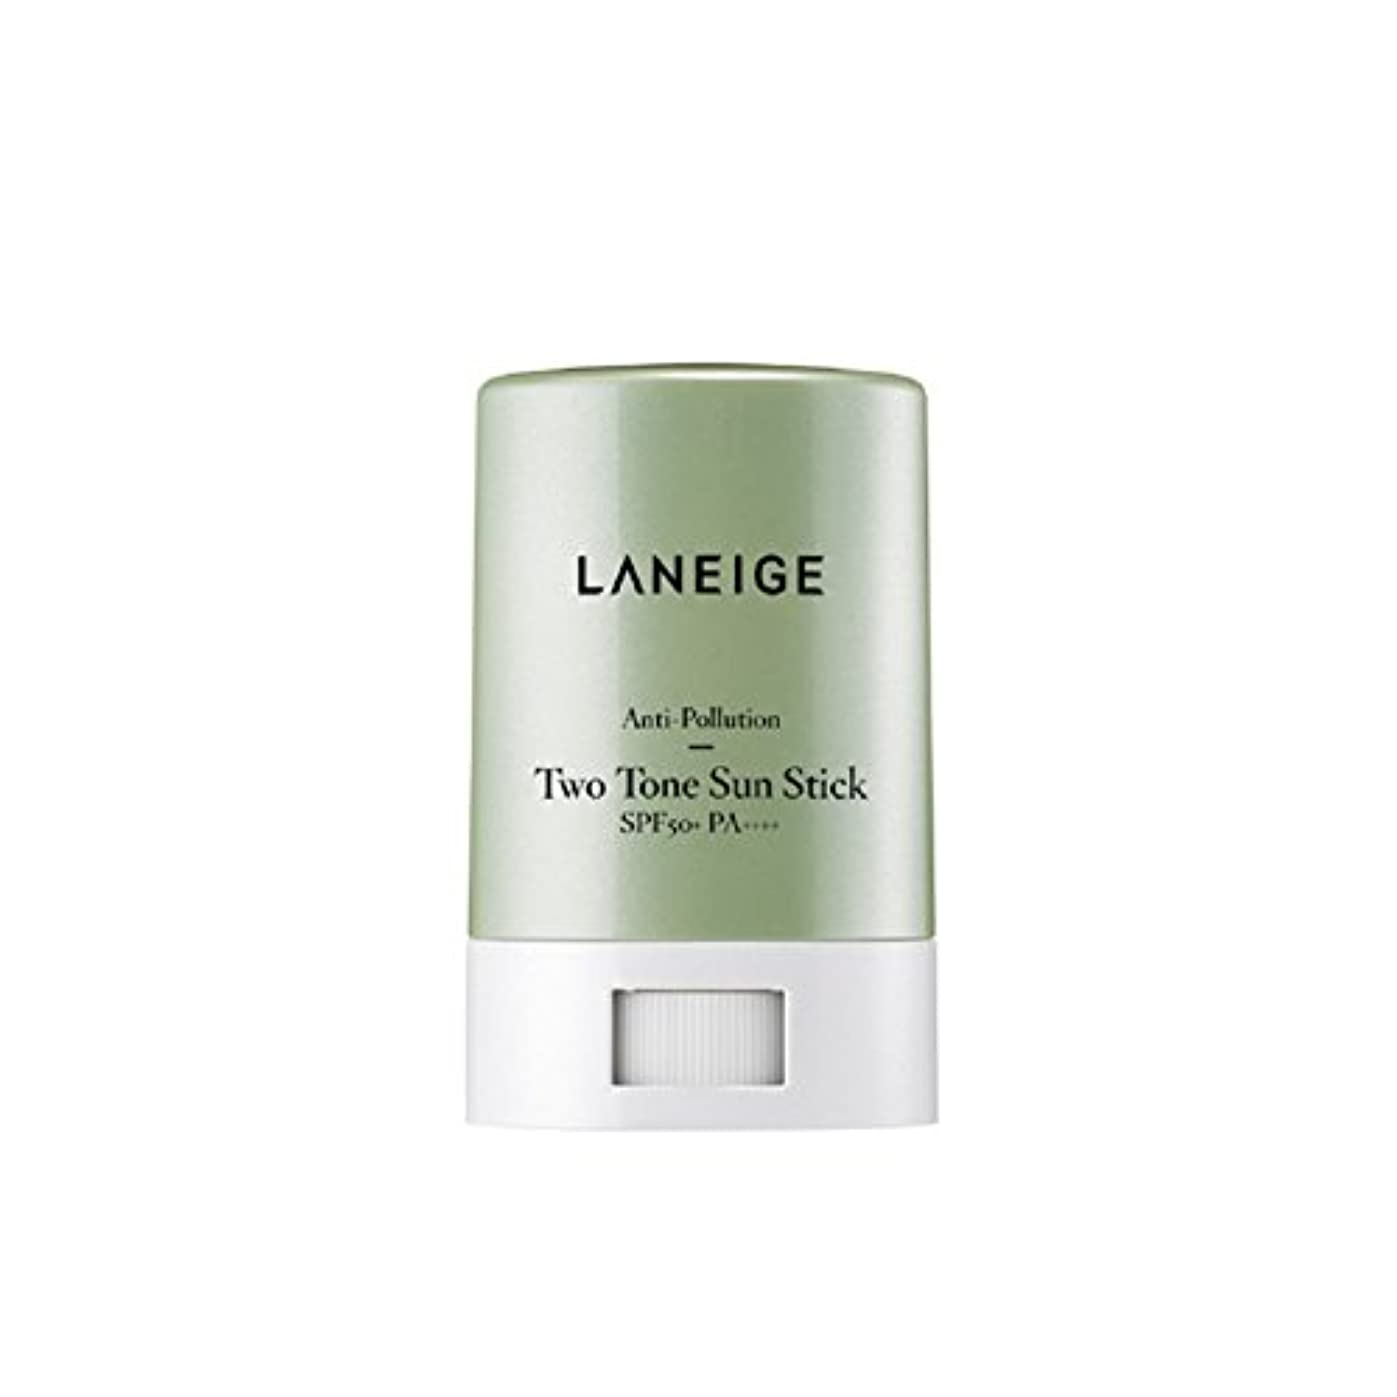 LANEIGE ラネージュ Anti-pollution Two Tone Sun Stick サンスティック SPF 50+PA++++ 18g Fine dust and UV protection 細かいほこりや紫外線...